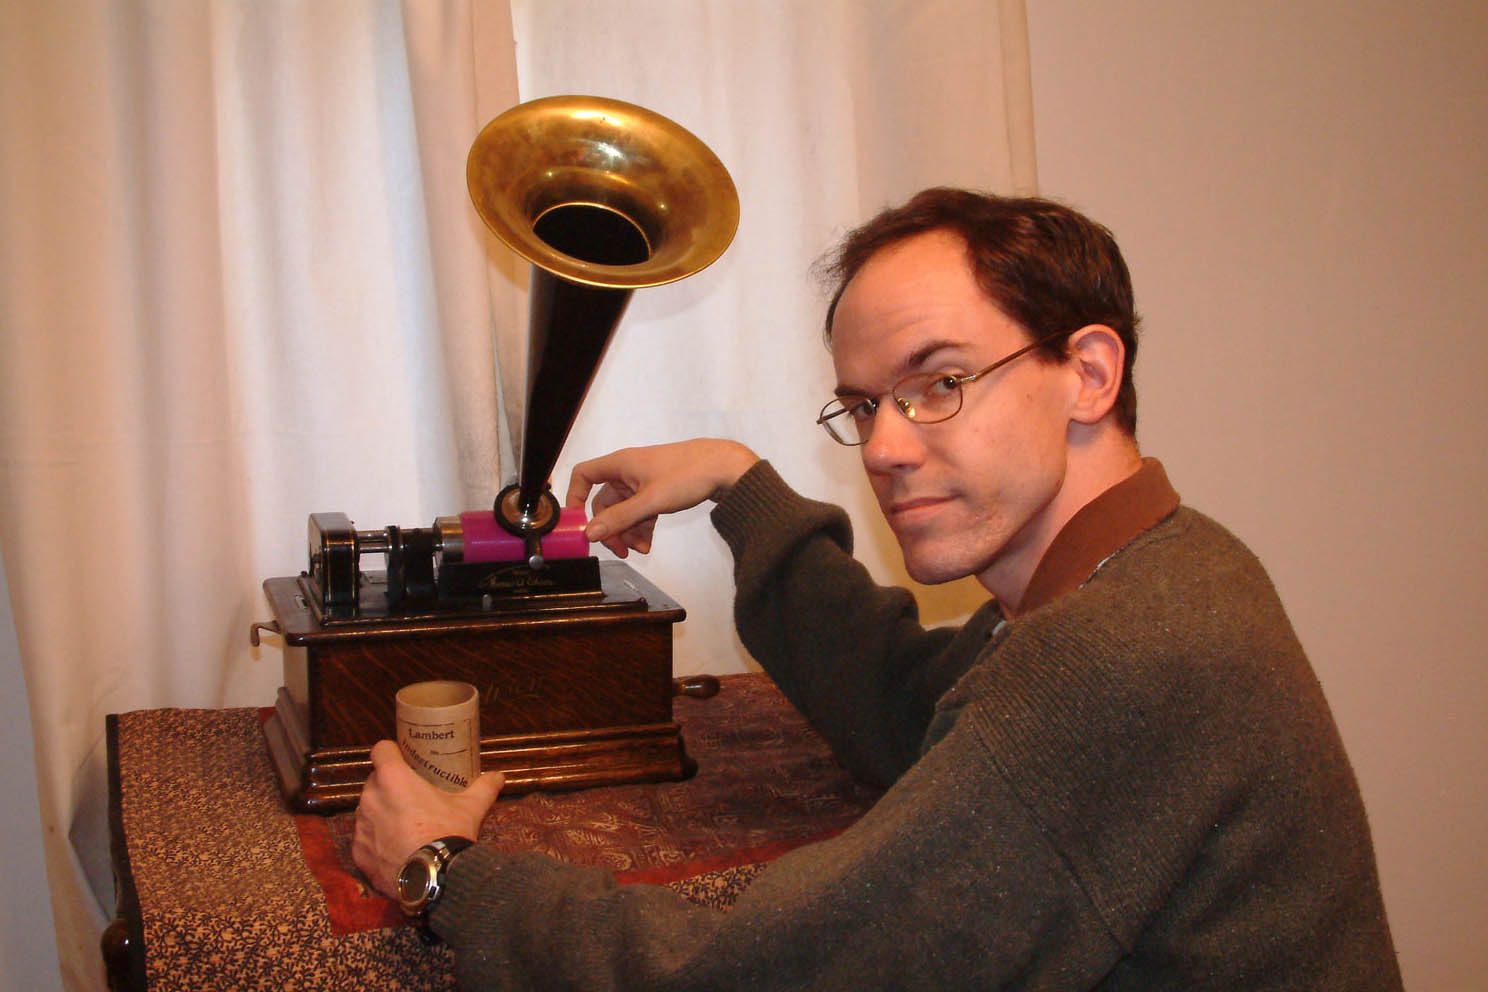 feaster with gramophone